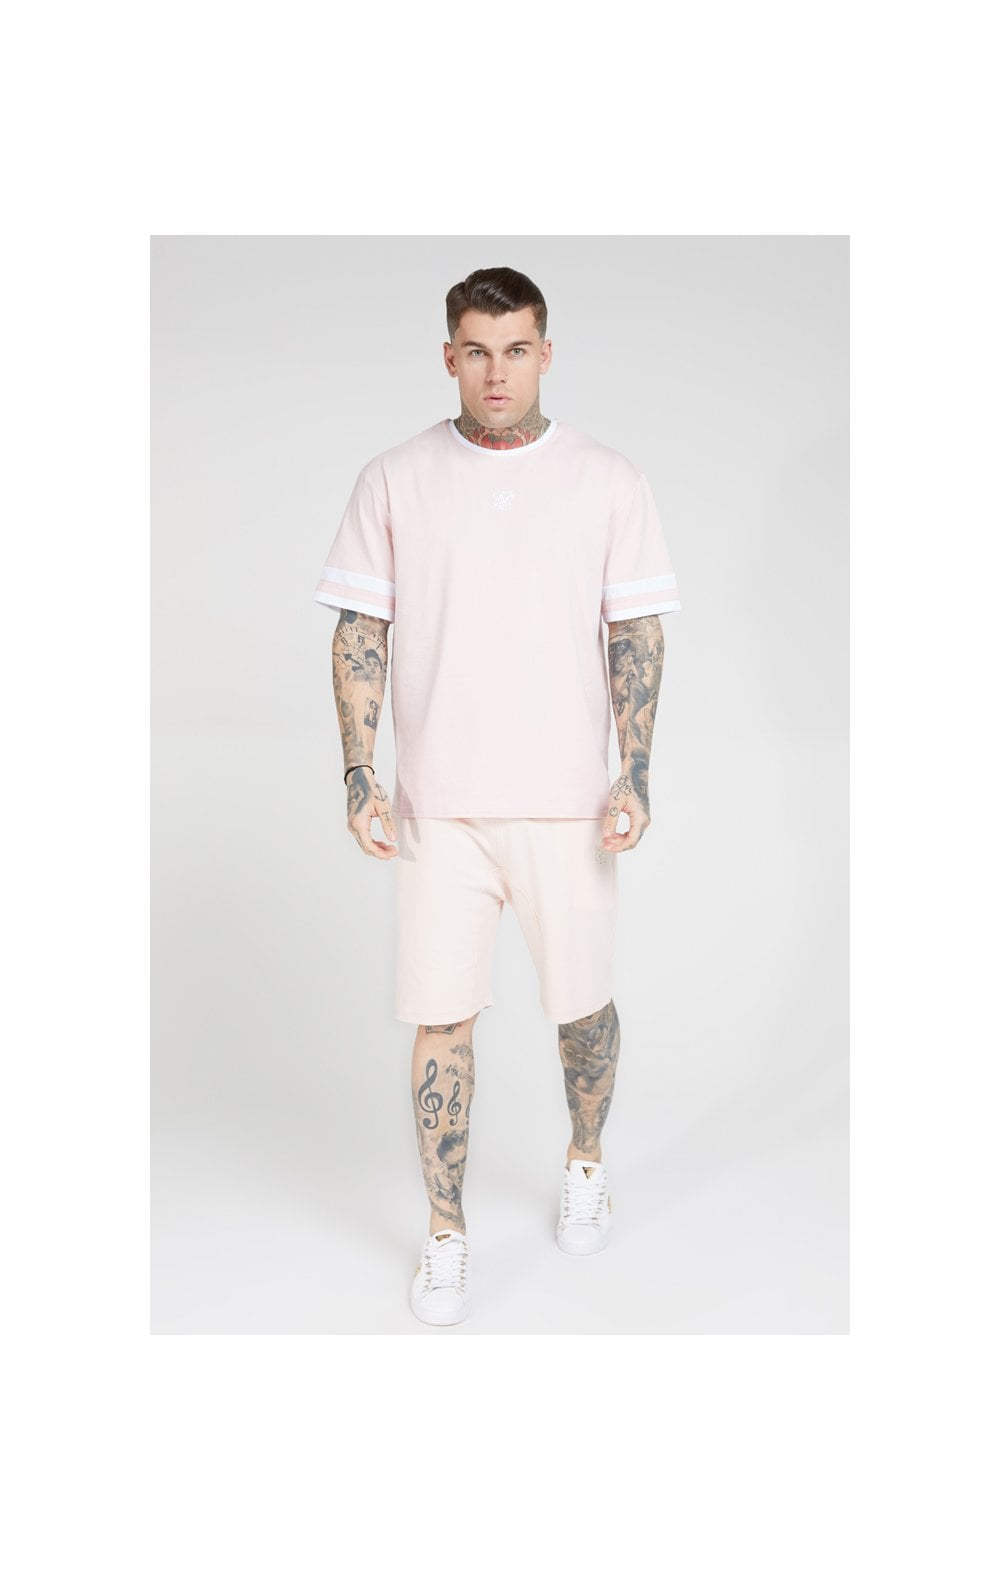 SikSilk S/S Essential Oversized Ringer Tee – Cloudy Pink (2)